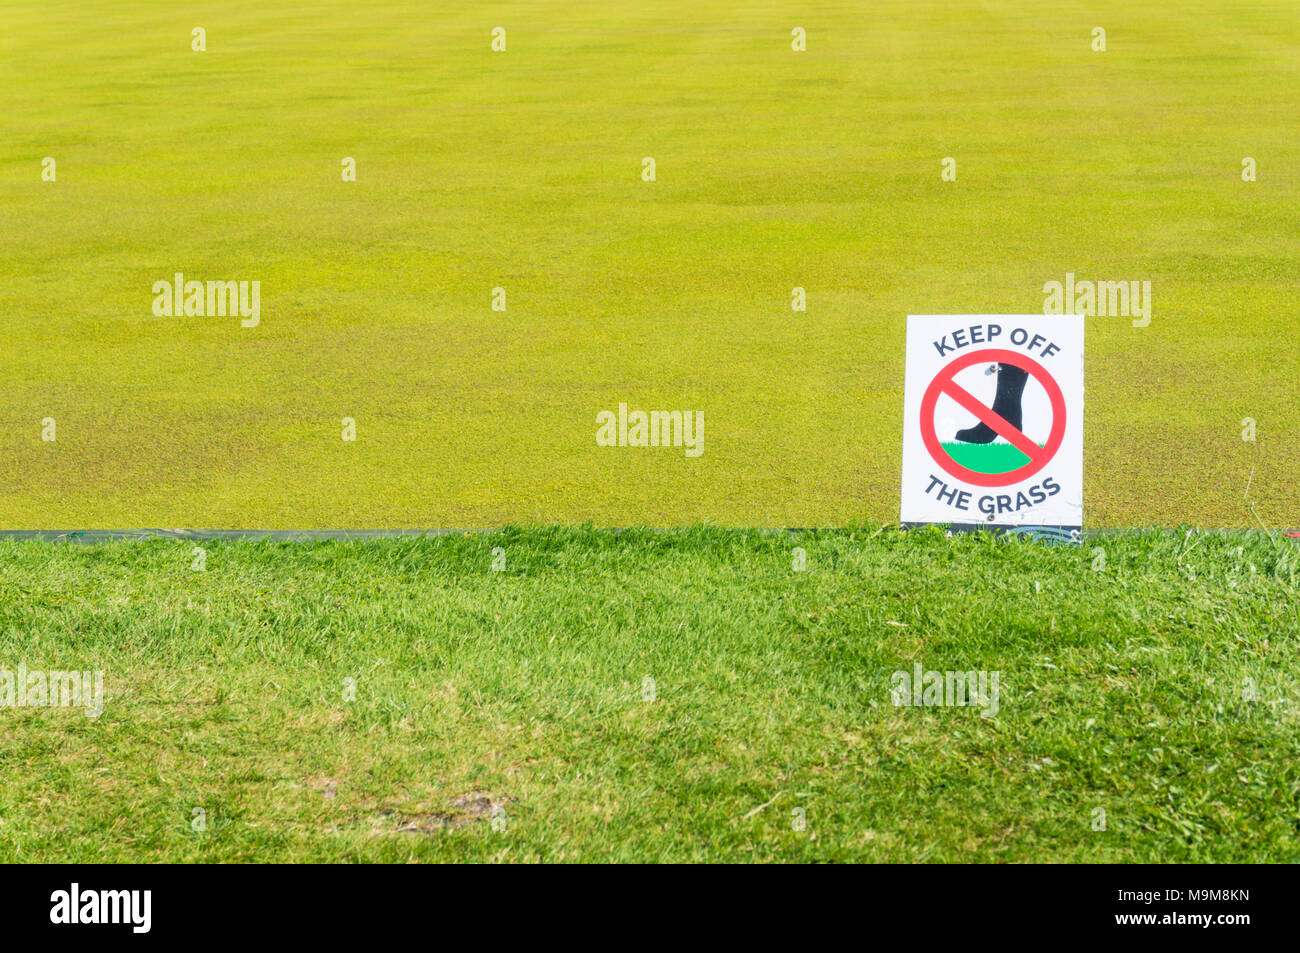 Keep off the grass sign warning sign public notice warning notice - Stock Image